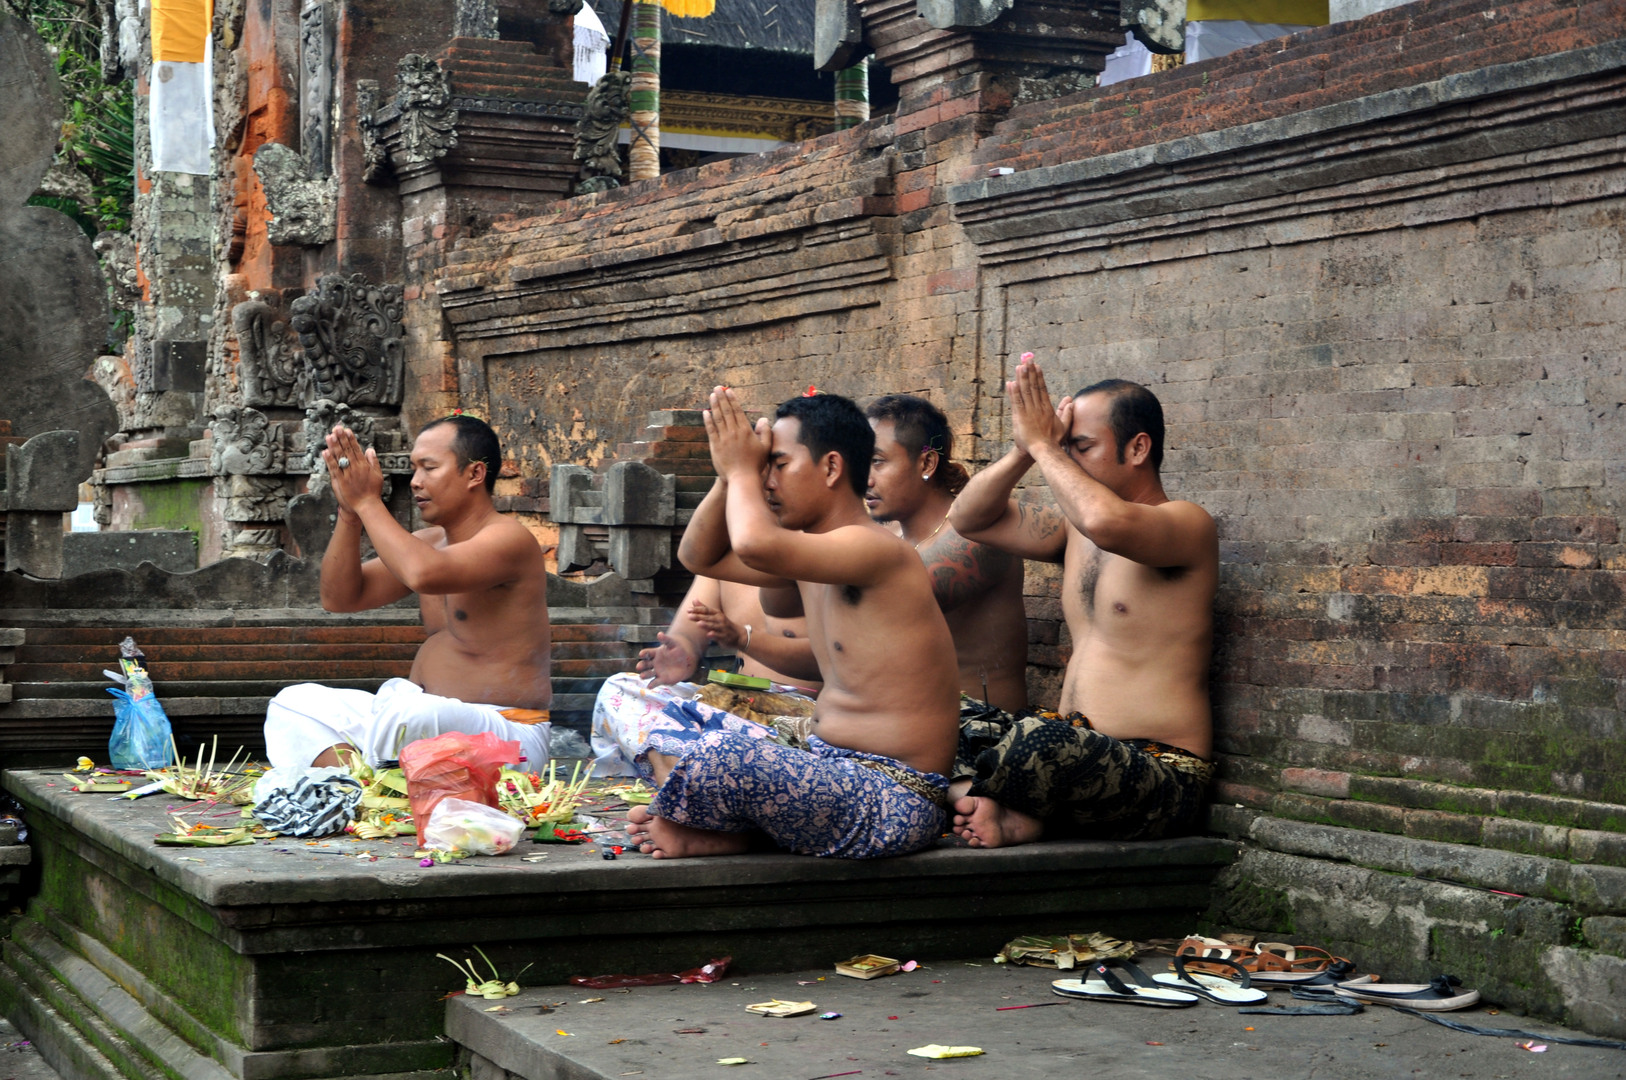 Hinduism_in_Indonesia-Bali-Balinese_Hinduism-Balinese_people-Hinduism-Indonesia-Indonesian_people-Prayer_in_Hinduism-Religion_in_Indonesia-Tirta_Empul_Temple